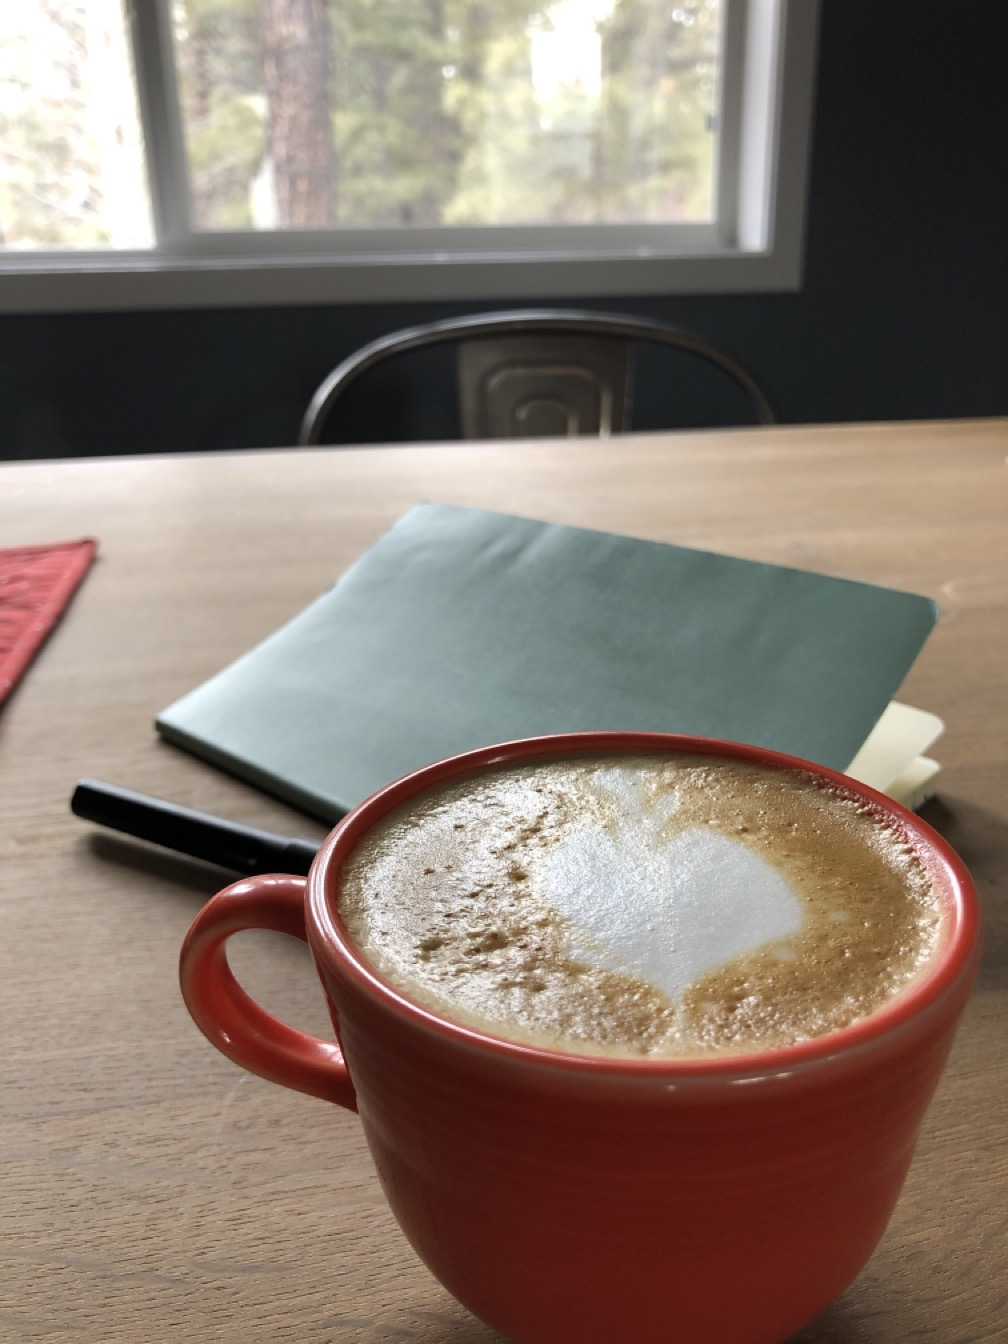 Cappuccino at a table with a notebook